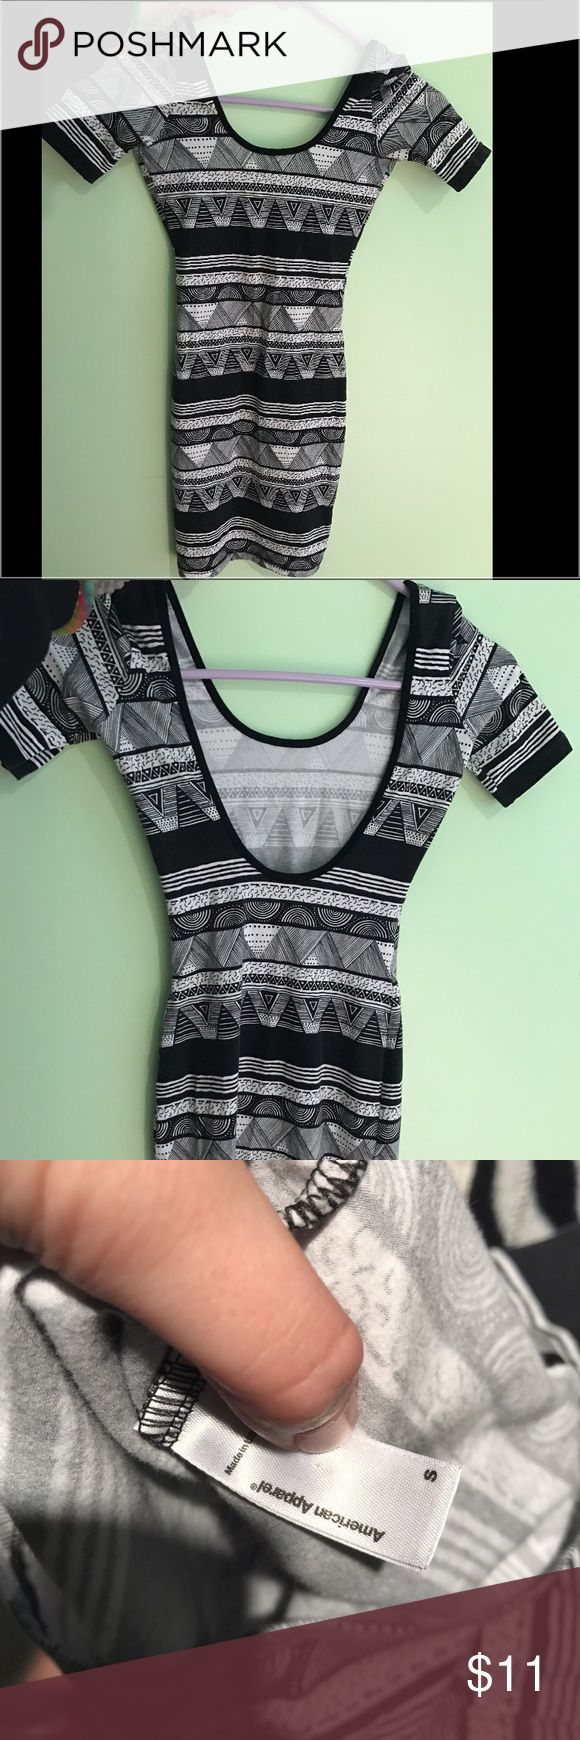 american apparel aztec bodycon dress never worn! just sits in my closet, very flattering on and comfy material! great for a night out. quarter sleeves. make offers American Apparel Dresses